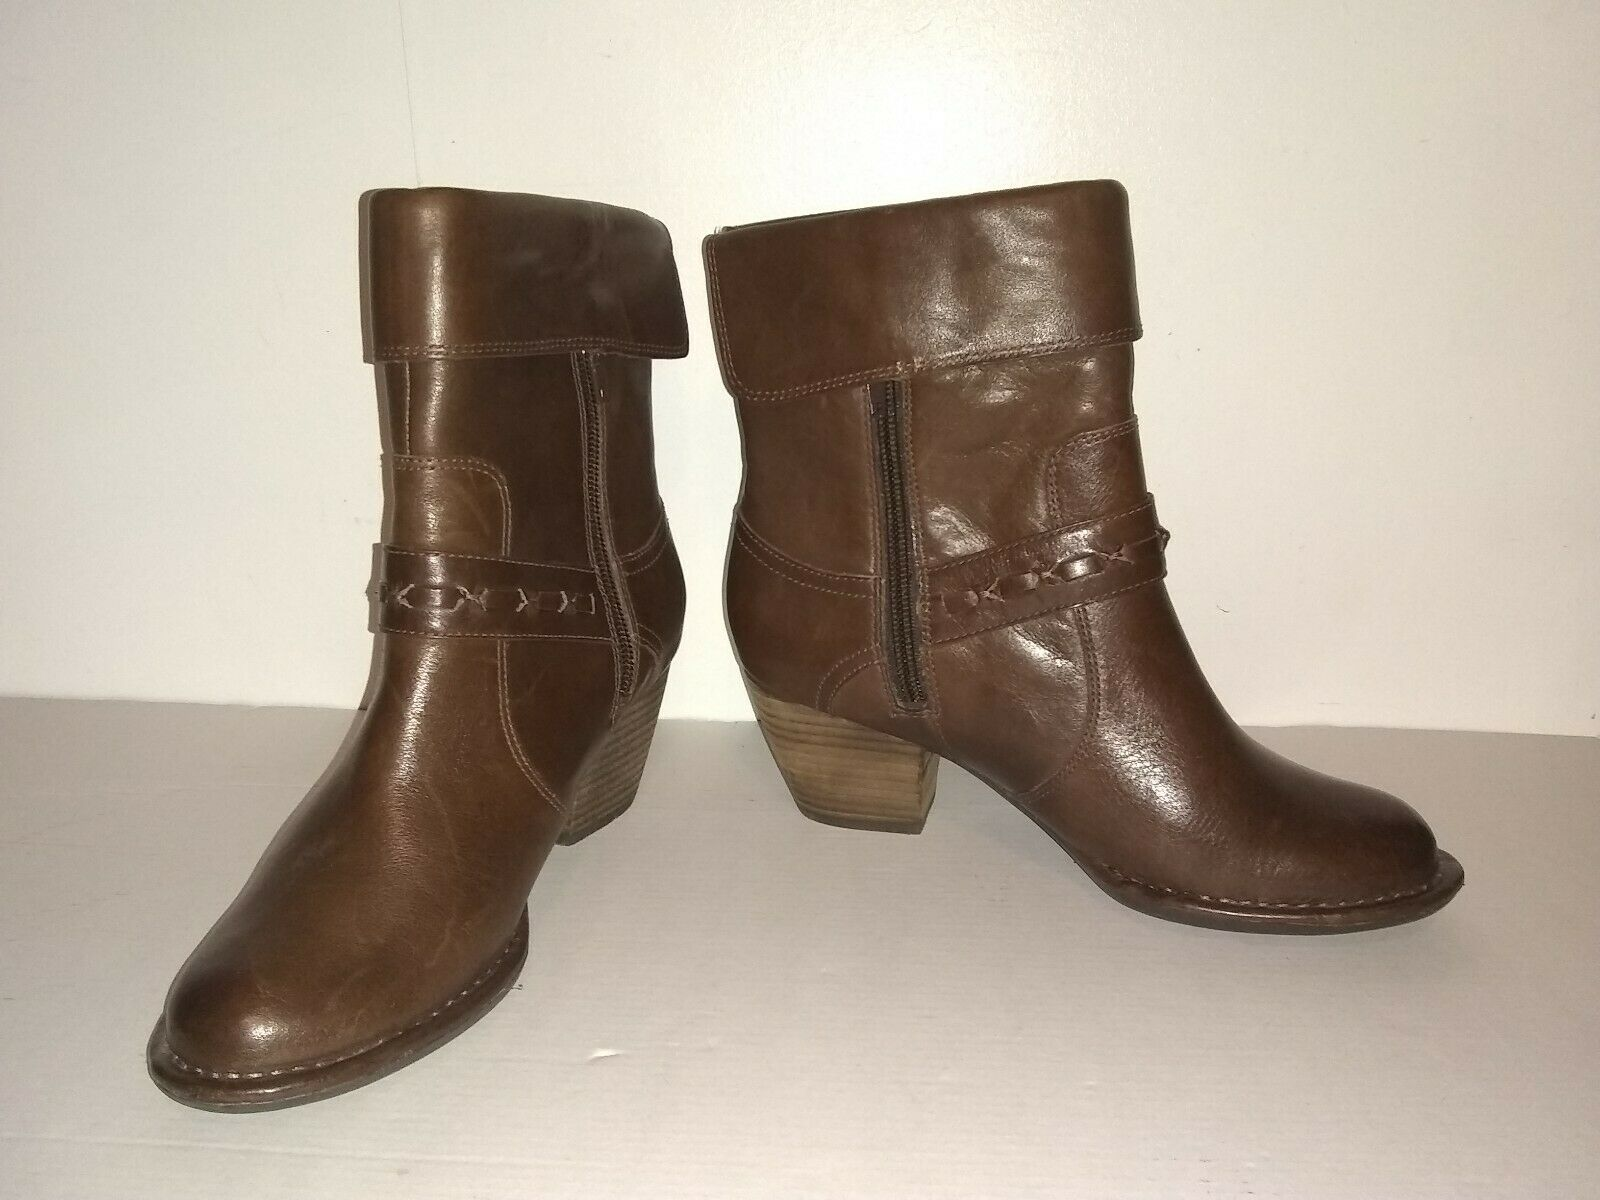 Clarks Ladies Ankle Boots UK Size 4 D EU 37 Brown Leather Zips Straps Heels